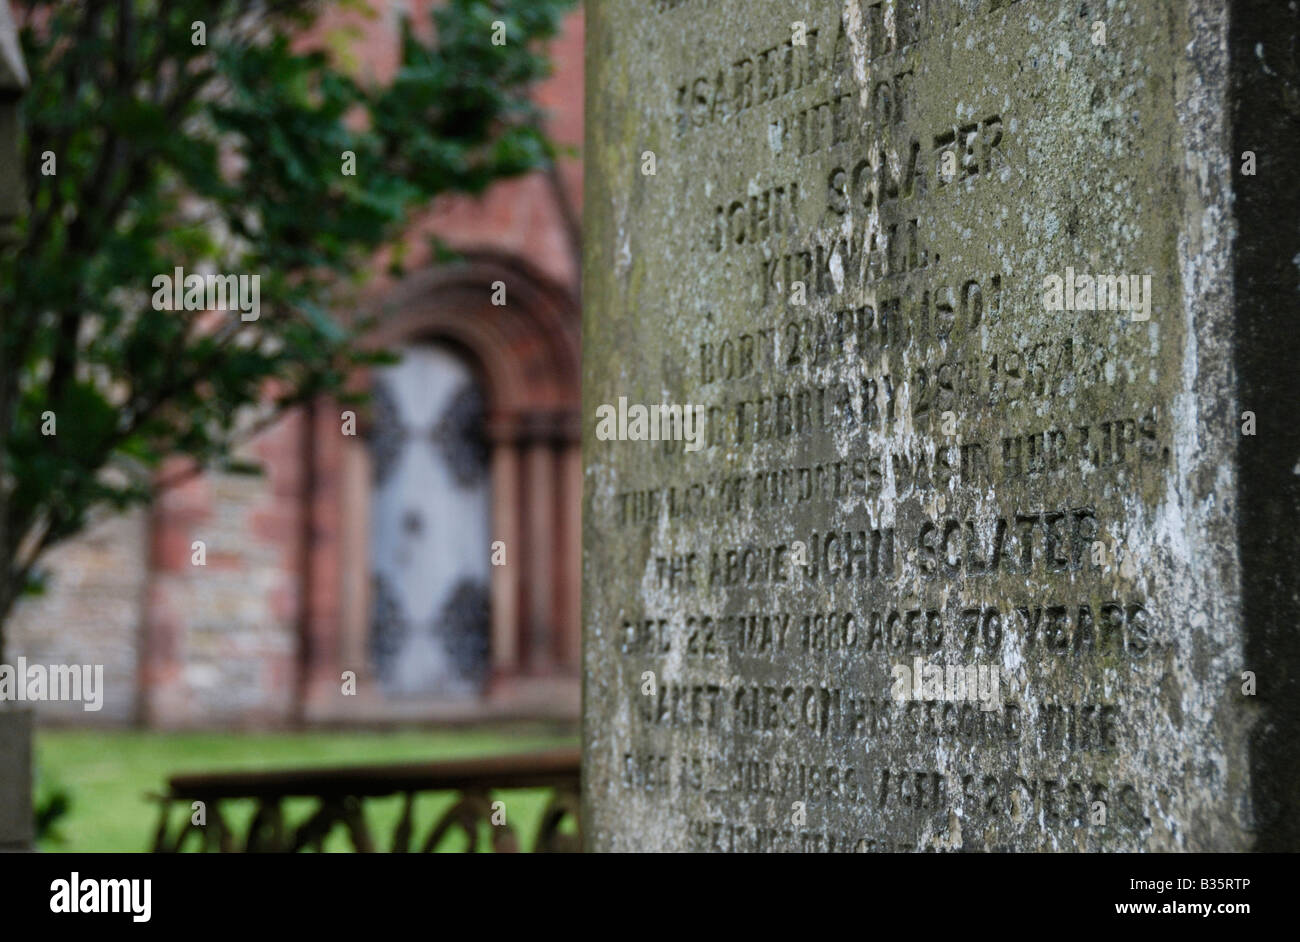 Grave stone St Magnus cathedral Kirkwall Orkney Scotland - Stock Image